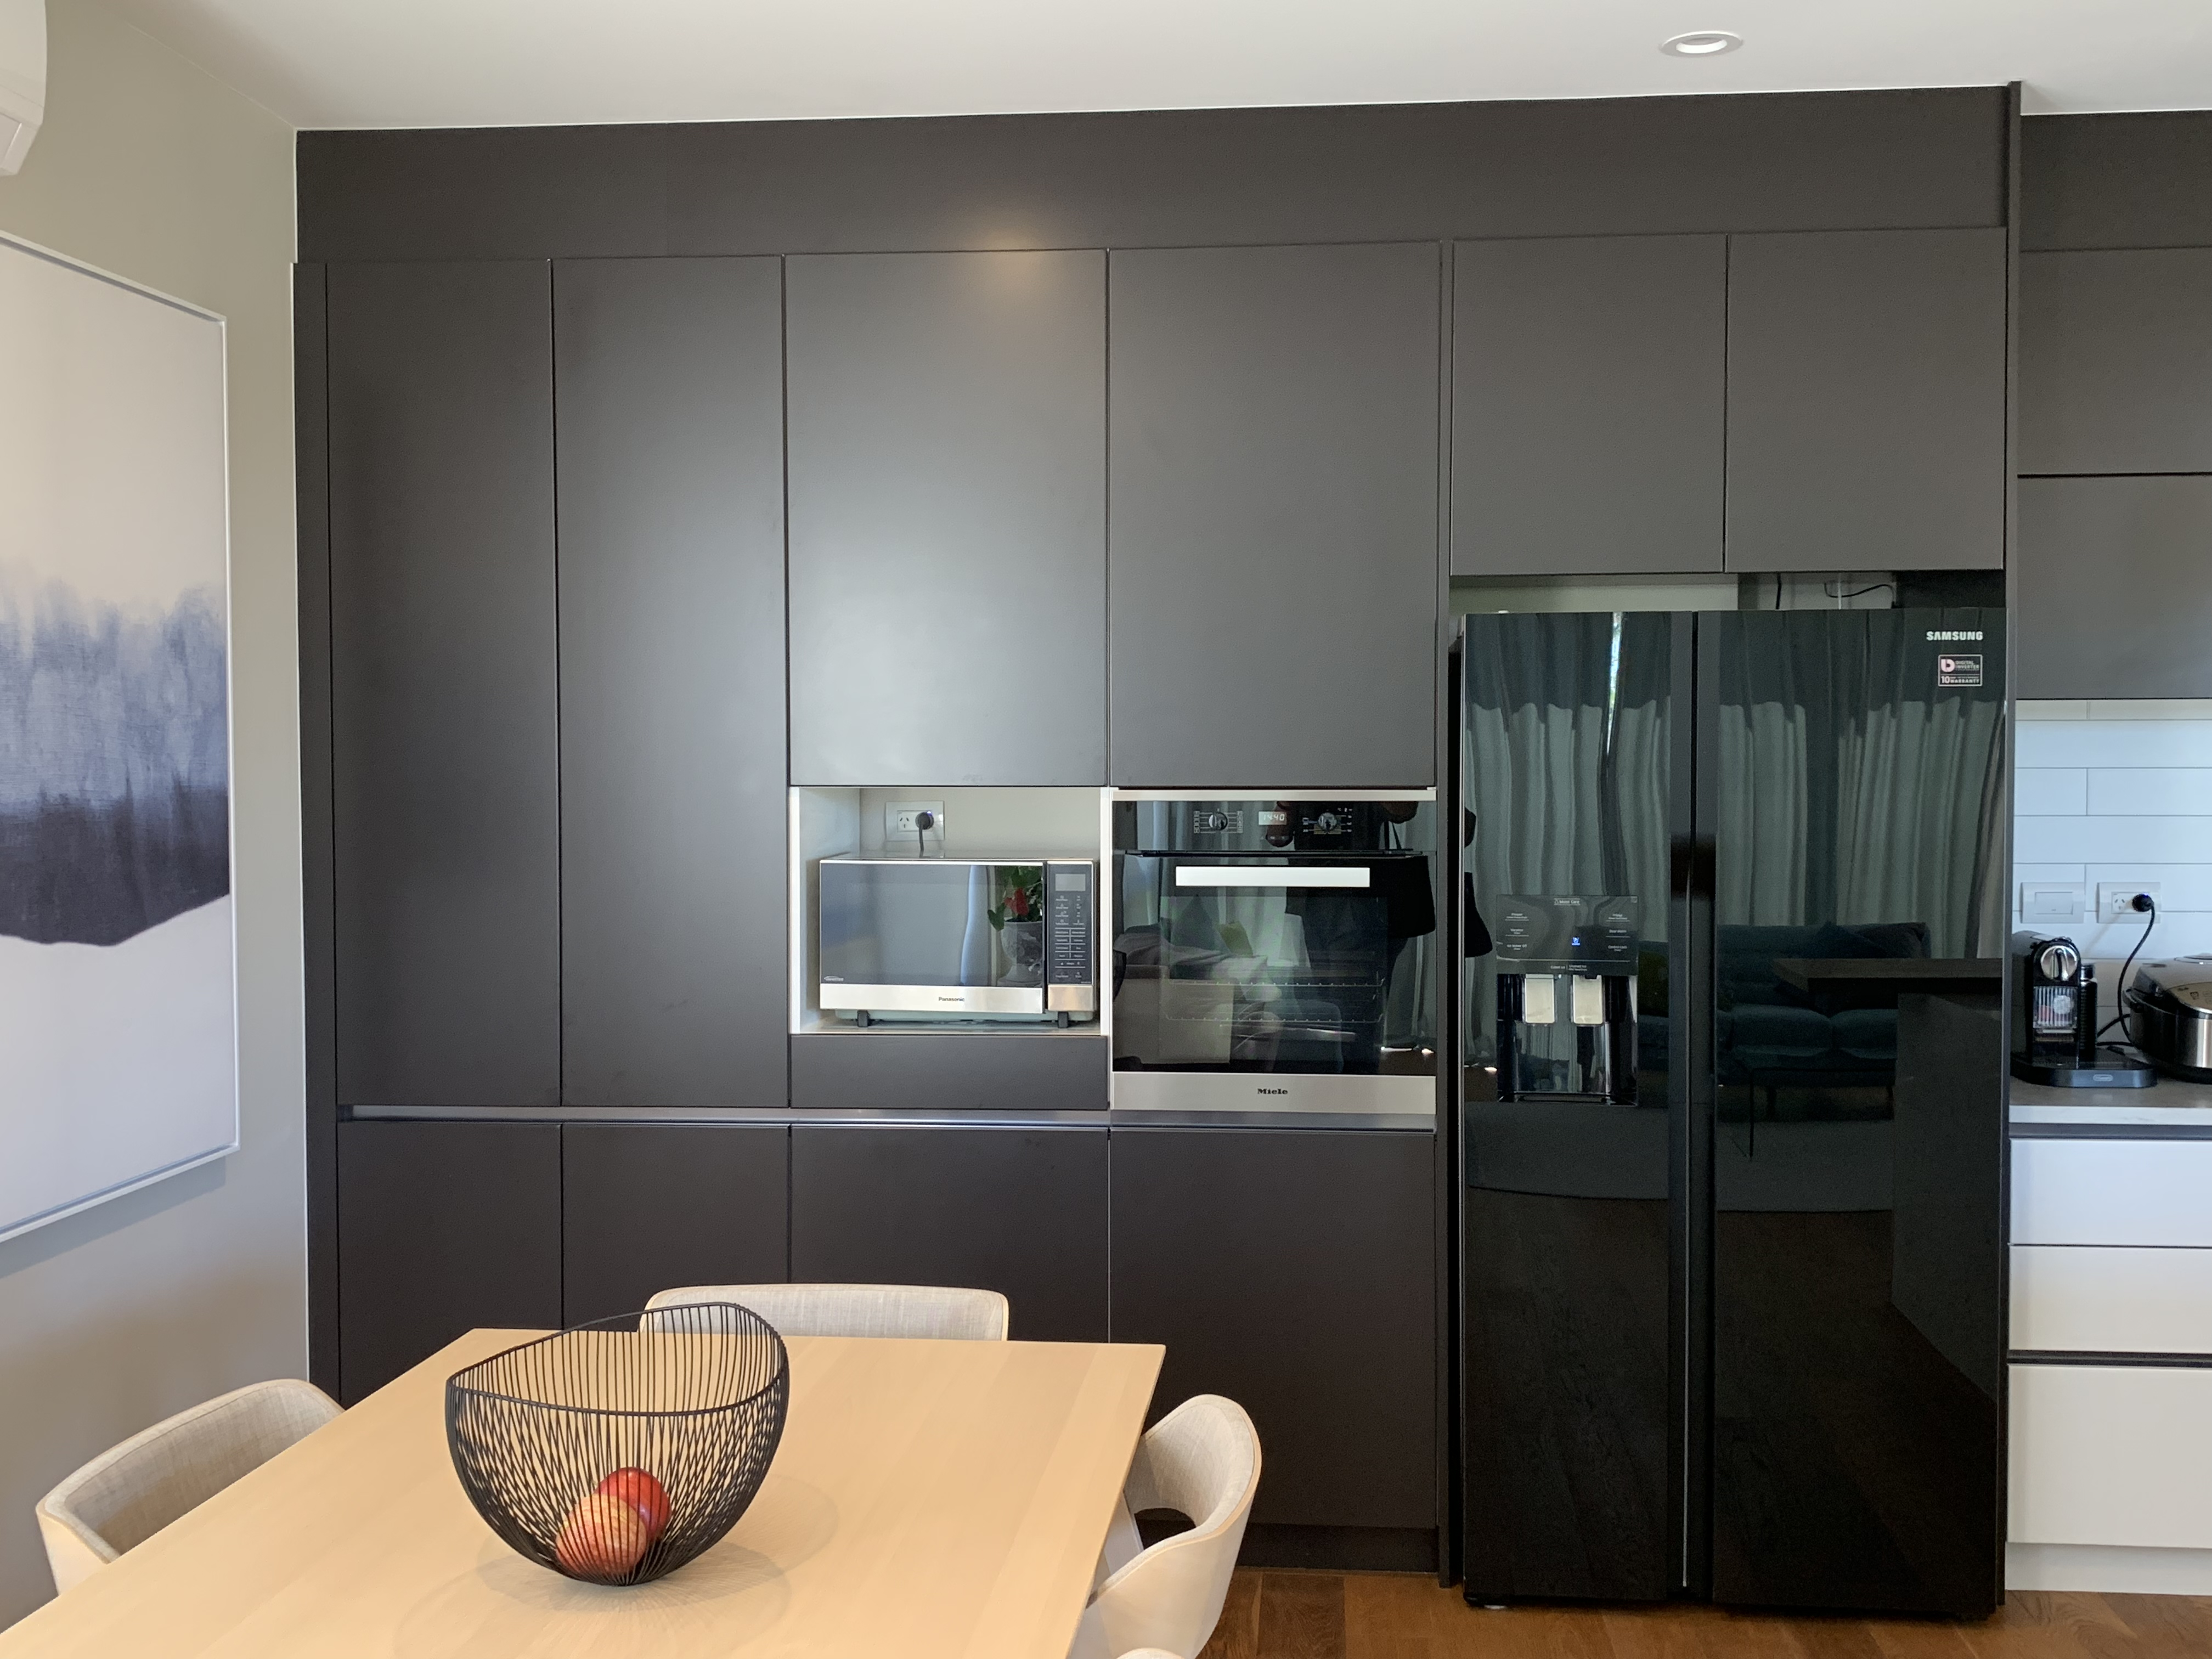 GJ-Kitchens-saint-helierss-kitchen-6-20190401222612142